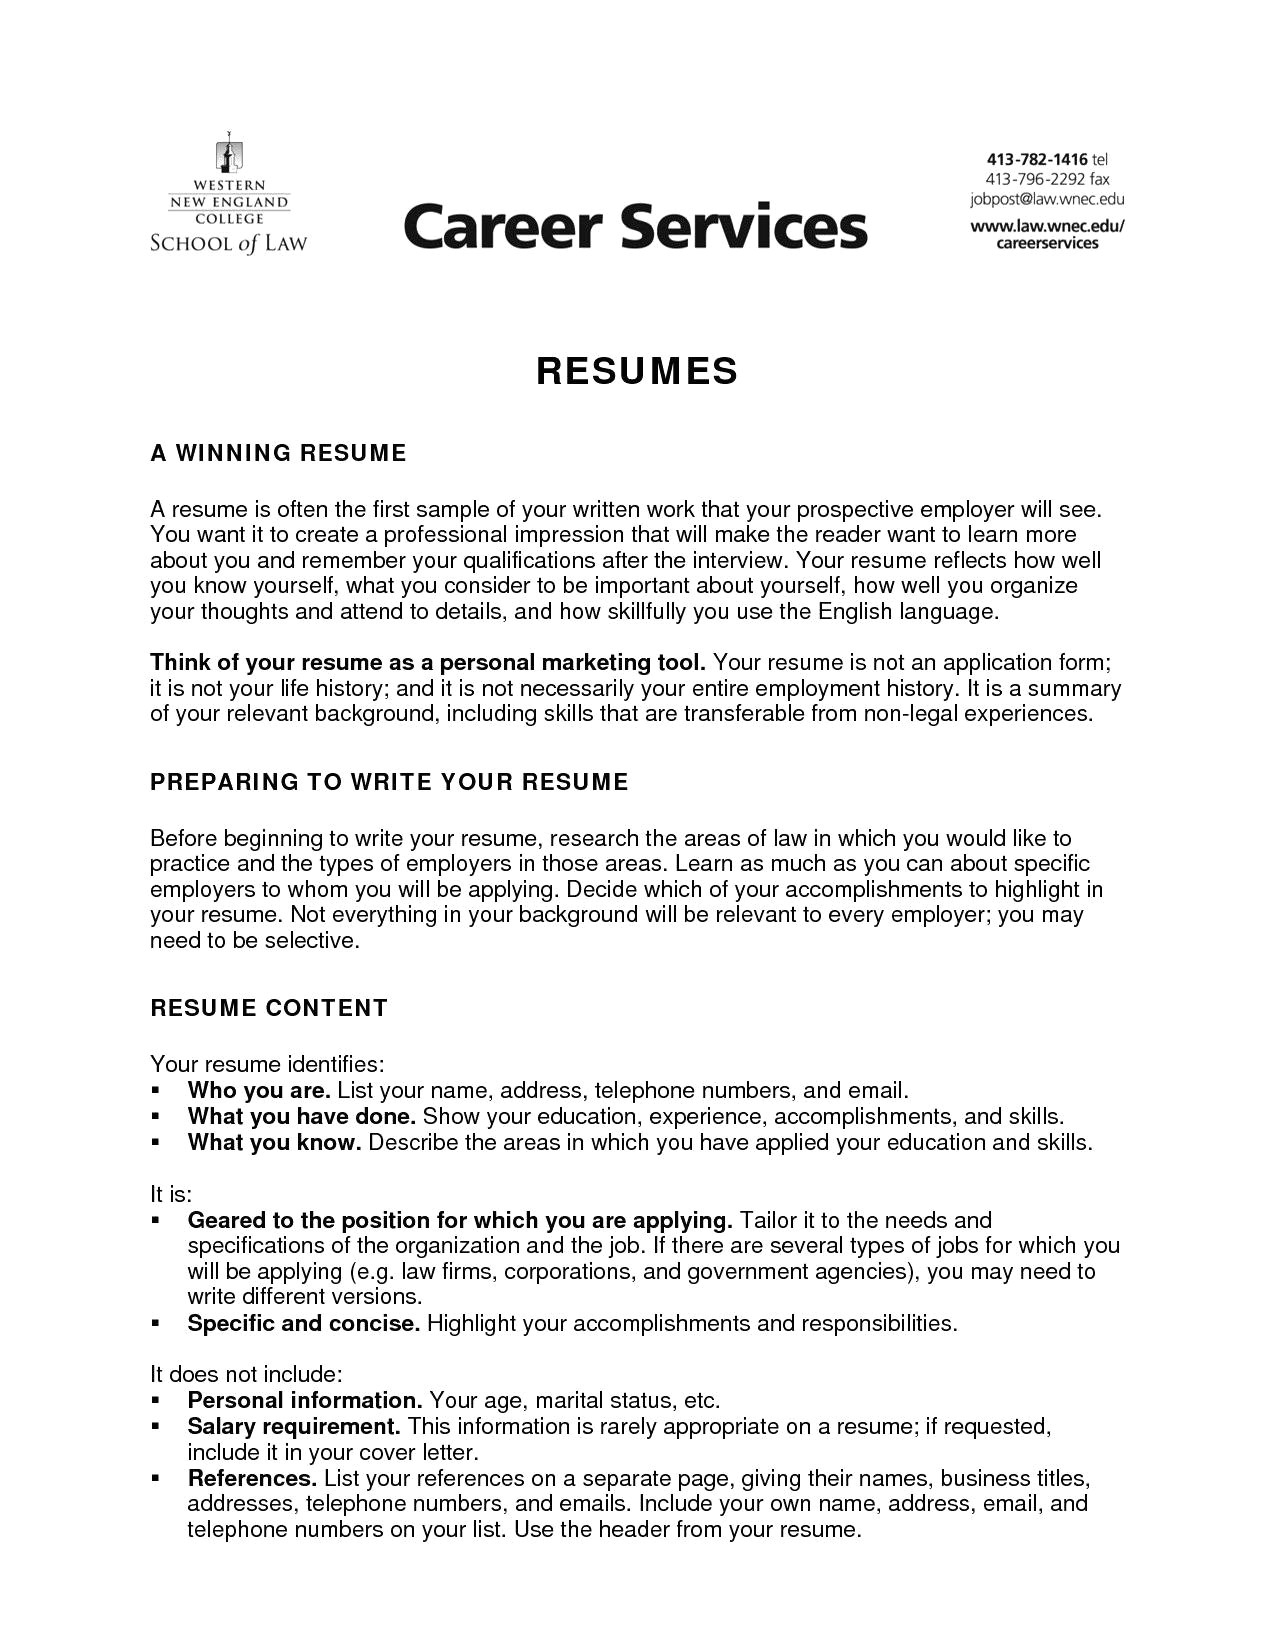 Law School Application Resume - 46 Inspirational Server Job Description for Resume